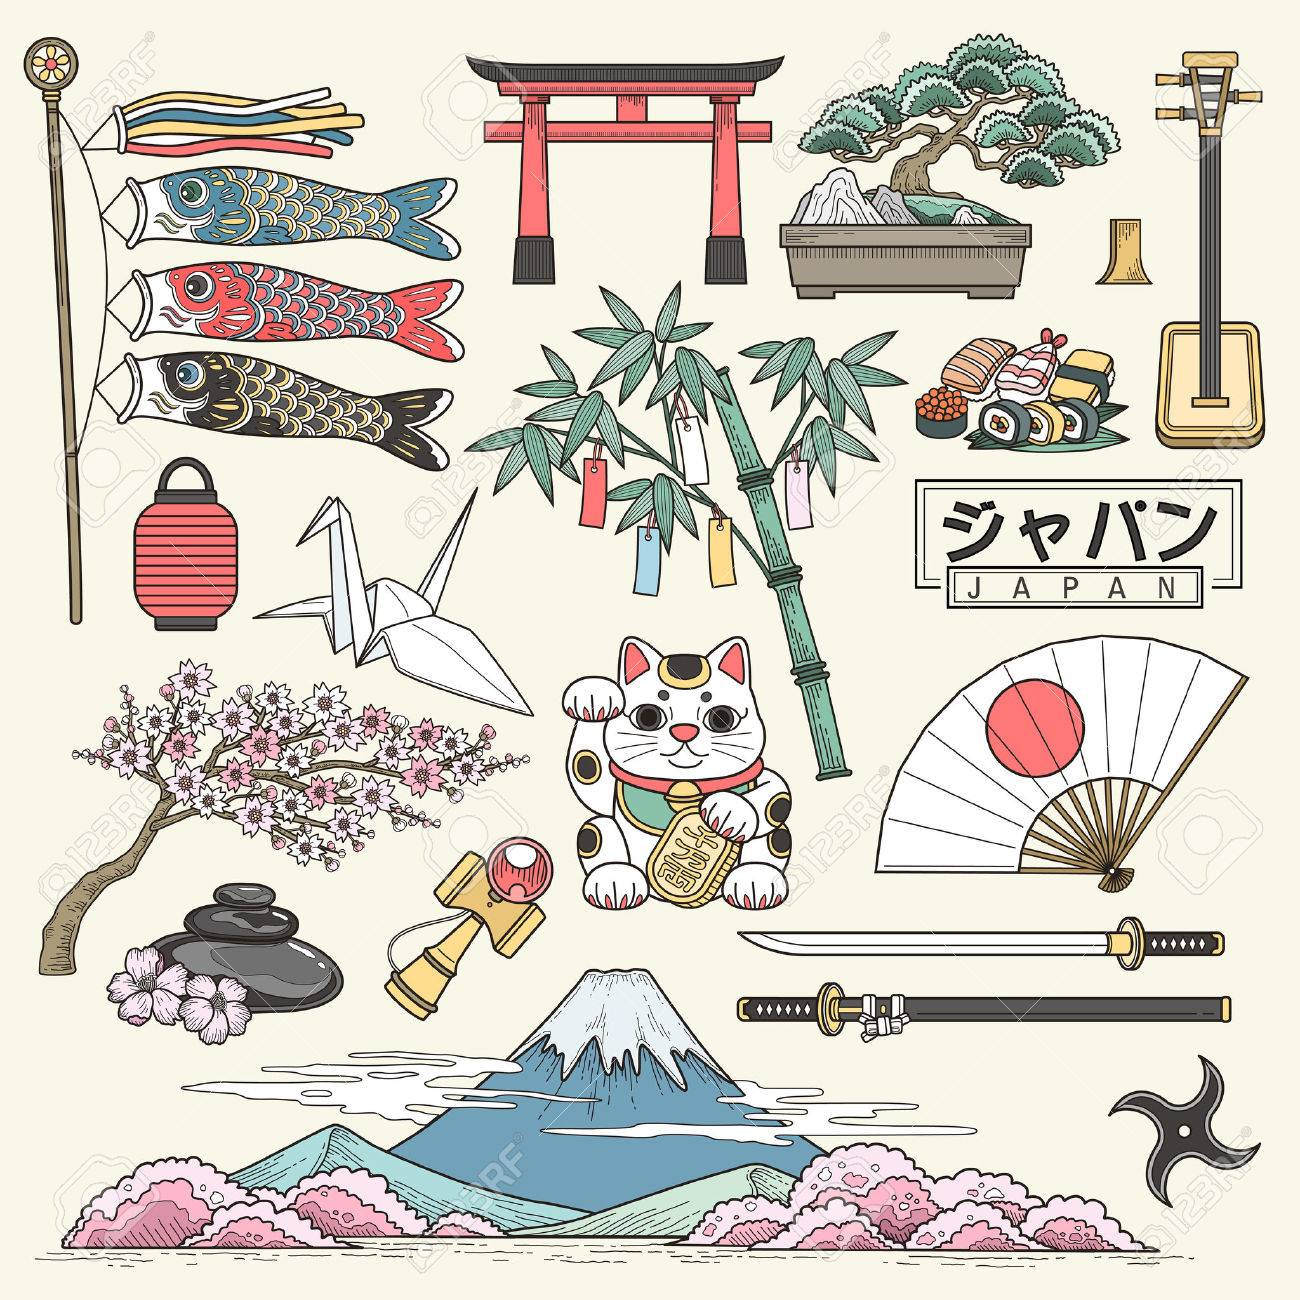 exquisite Japan travel elements collection in line style - Japan country name in Japanese words - 50046082